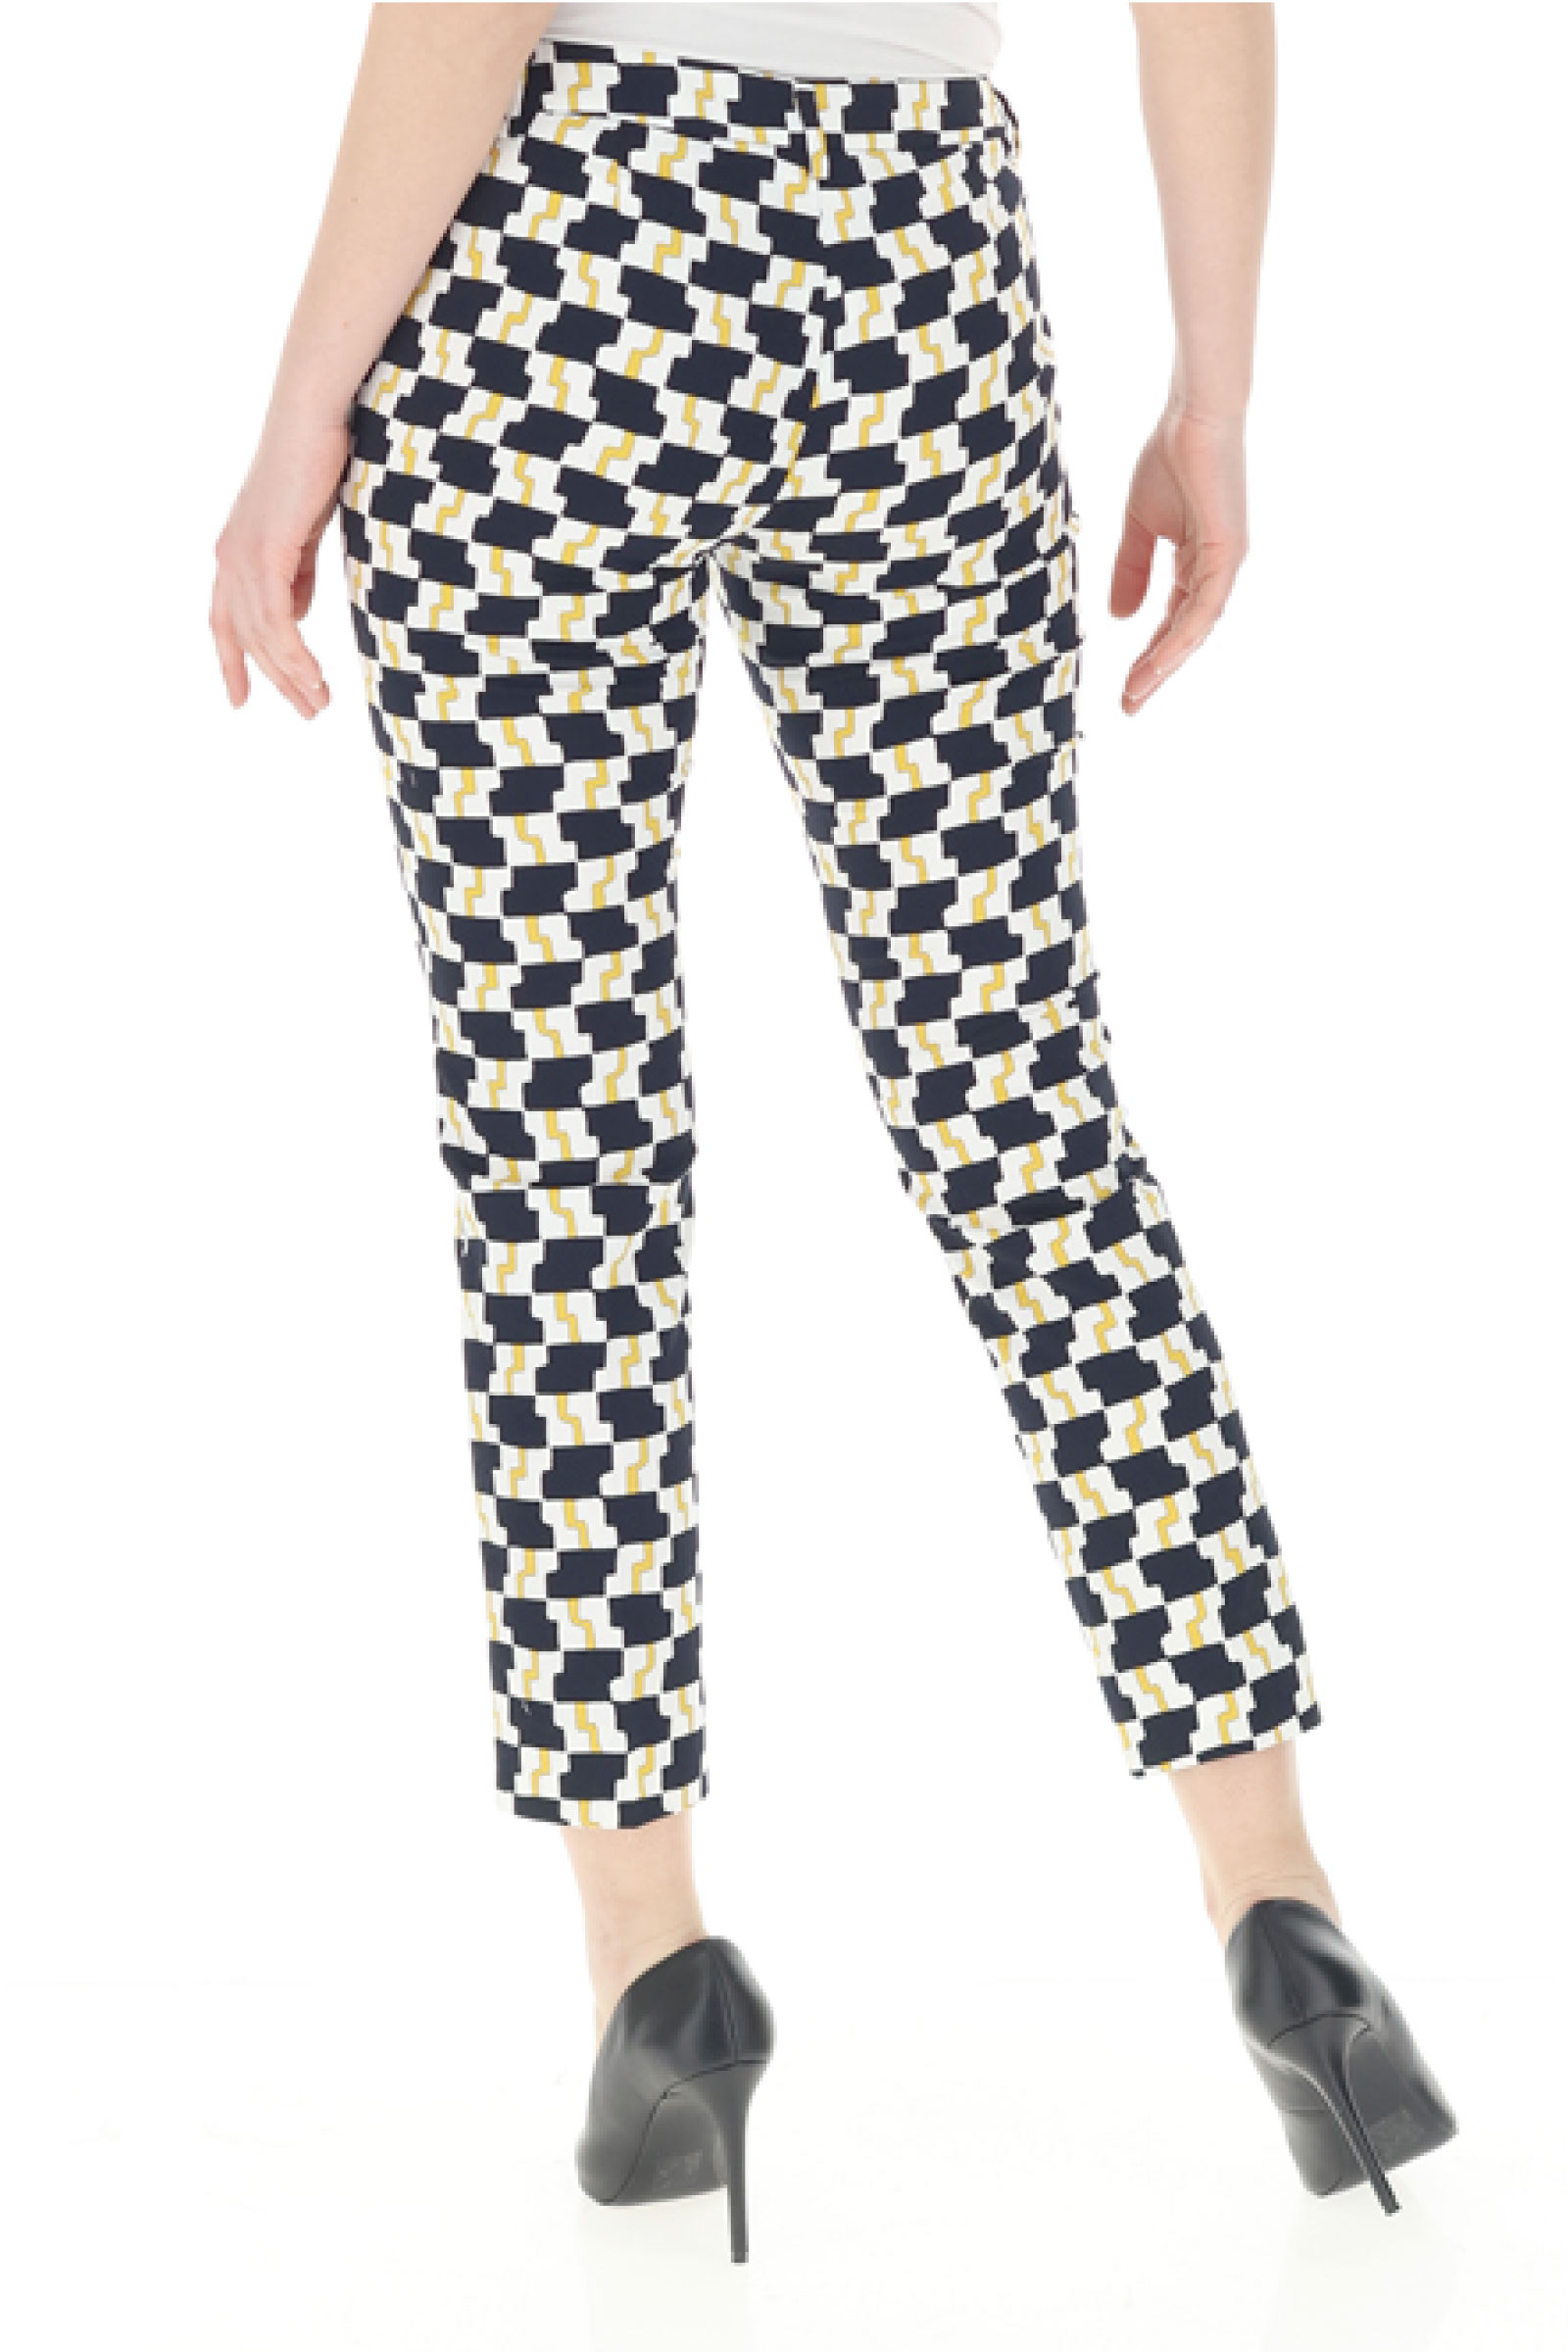 EMME MARELLA | Trousers | 51310514000004